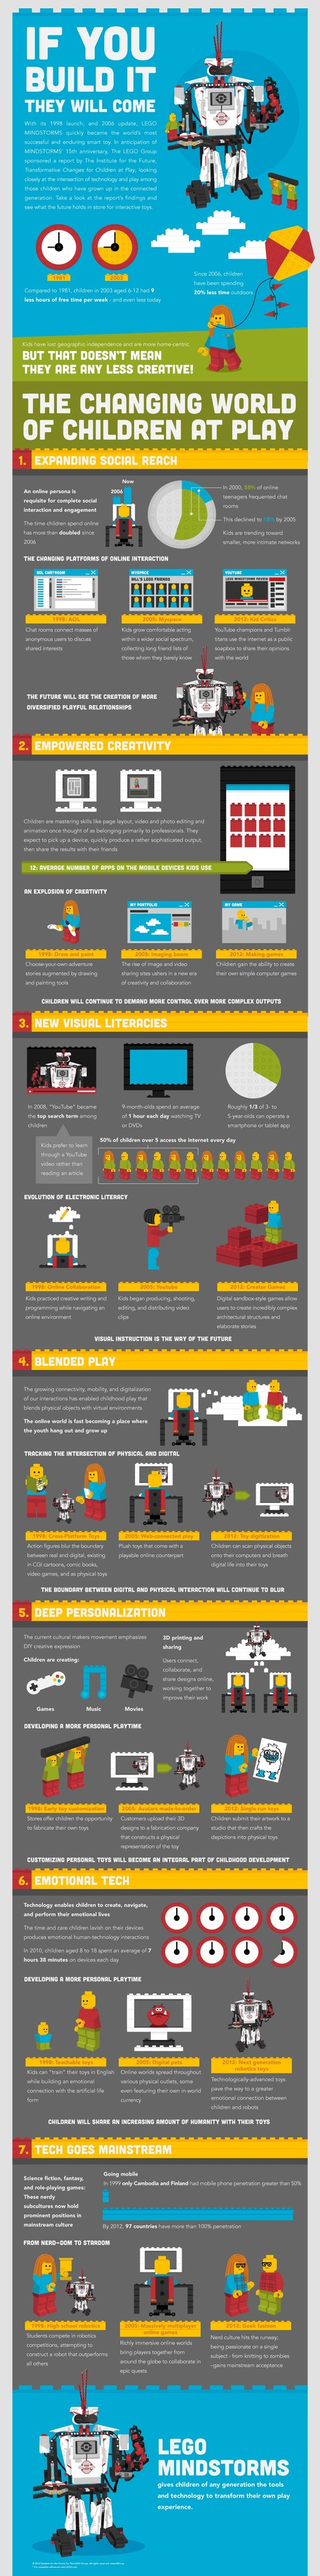 Let Children's Play (with Technology) Be Their Work in Education [Infographic] | Melinda's page | Scoop.it